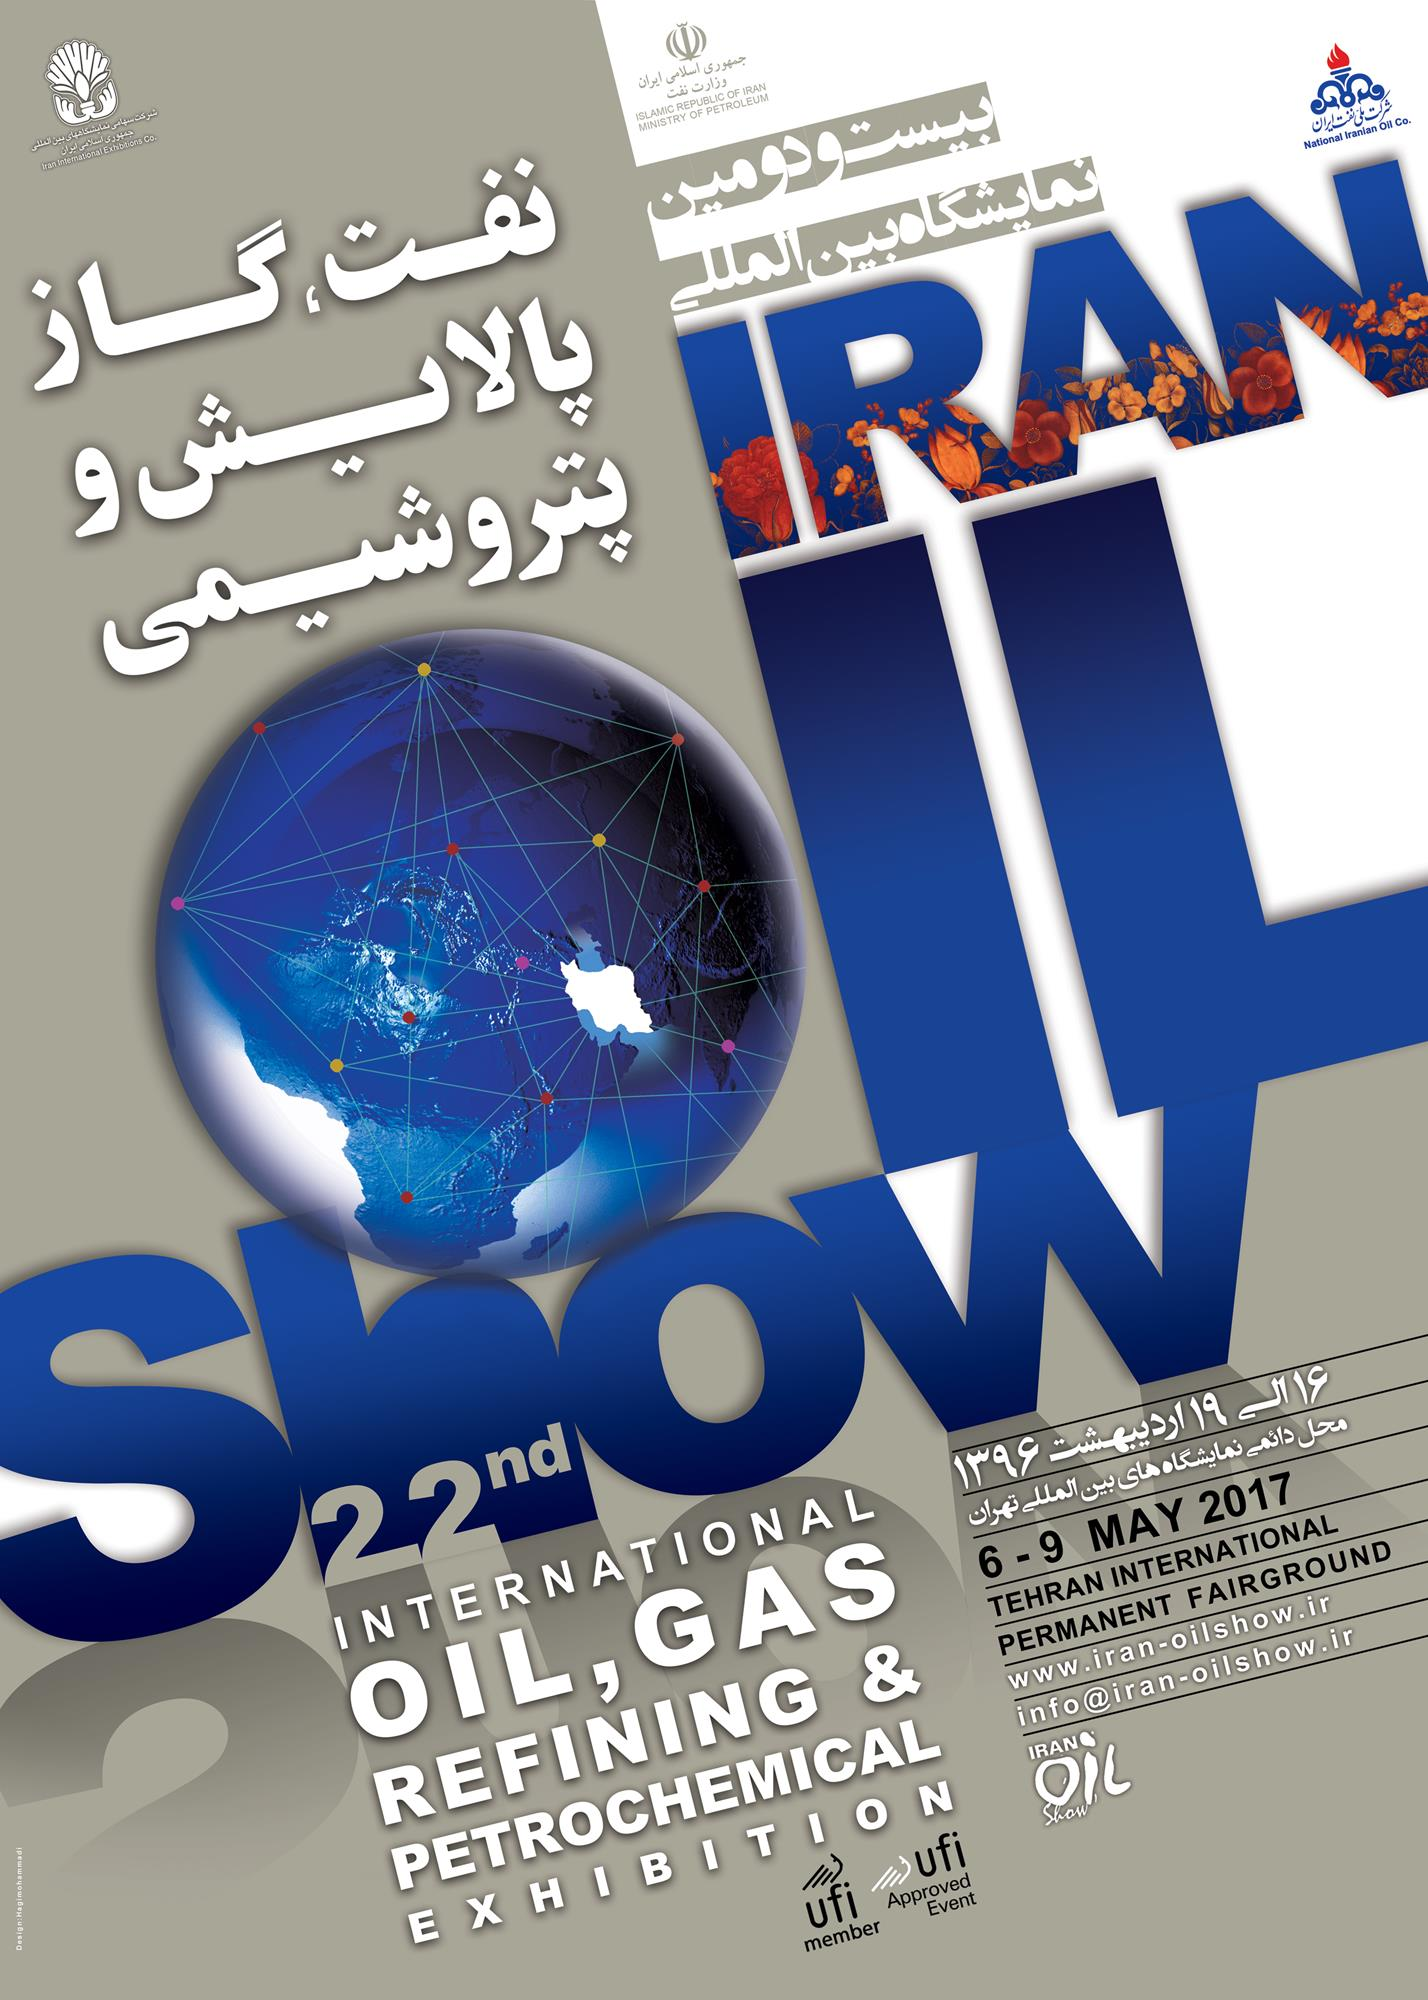 22nd Oil, Gas, Refining, Petrochemical Exhibition